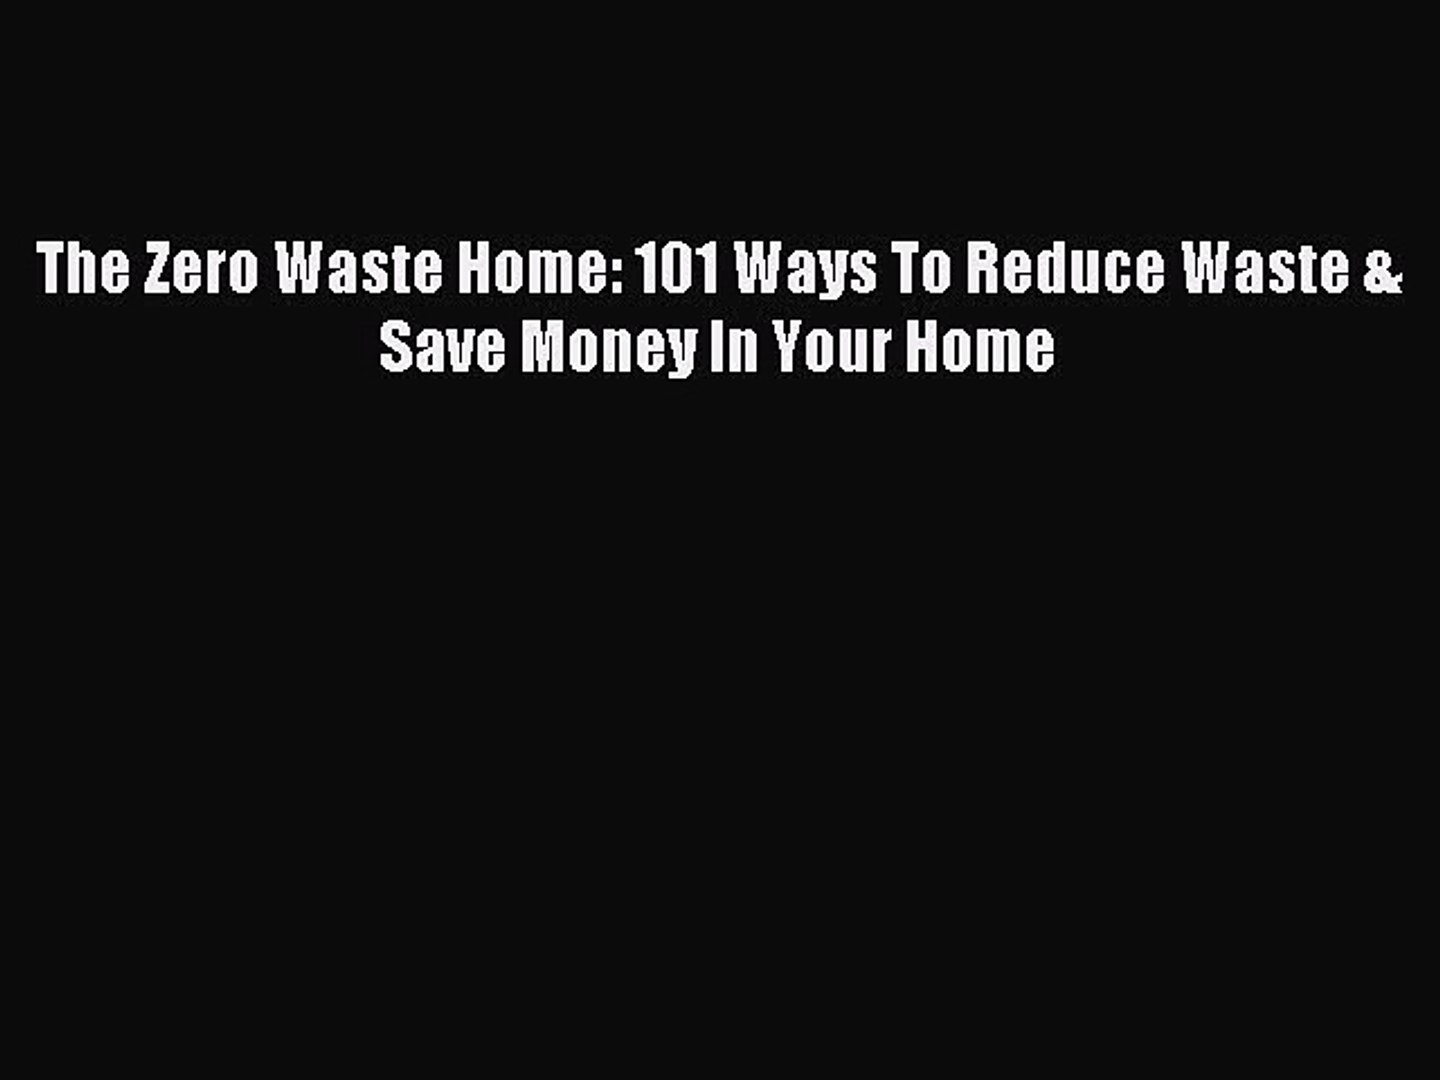 Download The Zero Waste Home: 101 Ways To Reduce Waste & Save Money In Your  Home Ebook Online